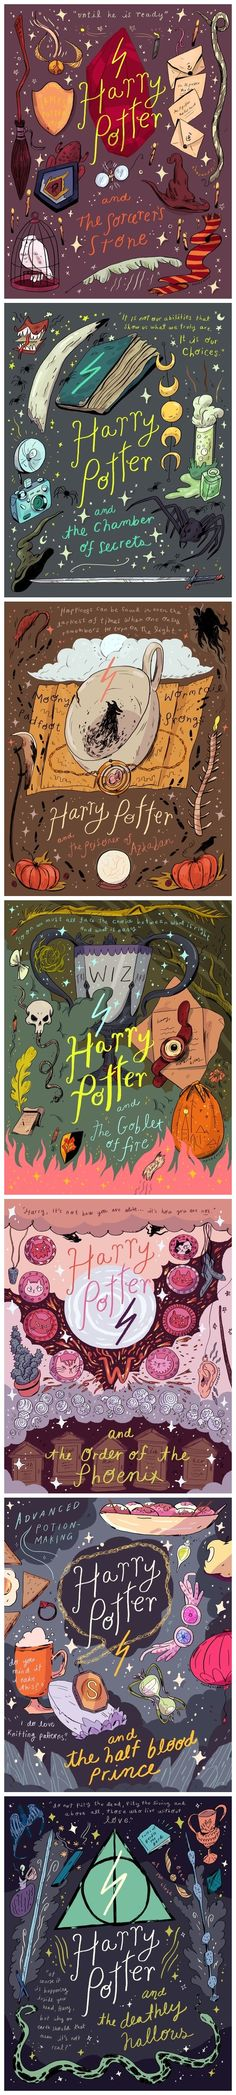 Harry Potter print Illustration